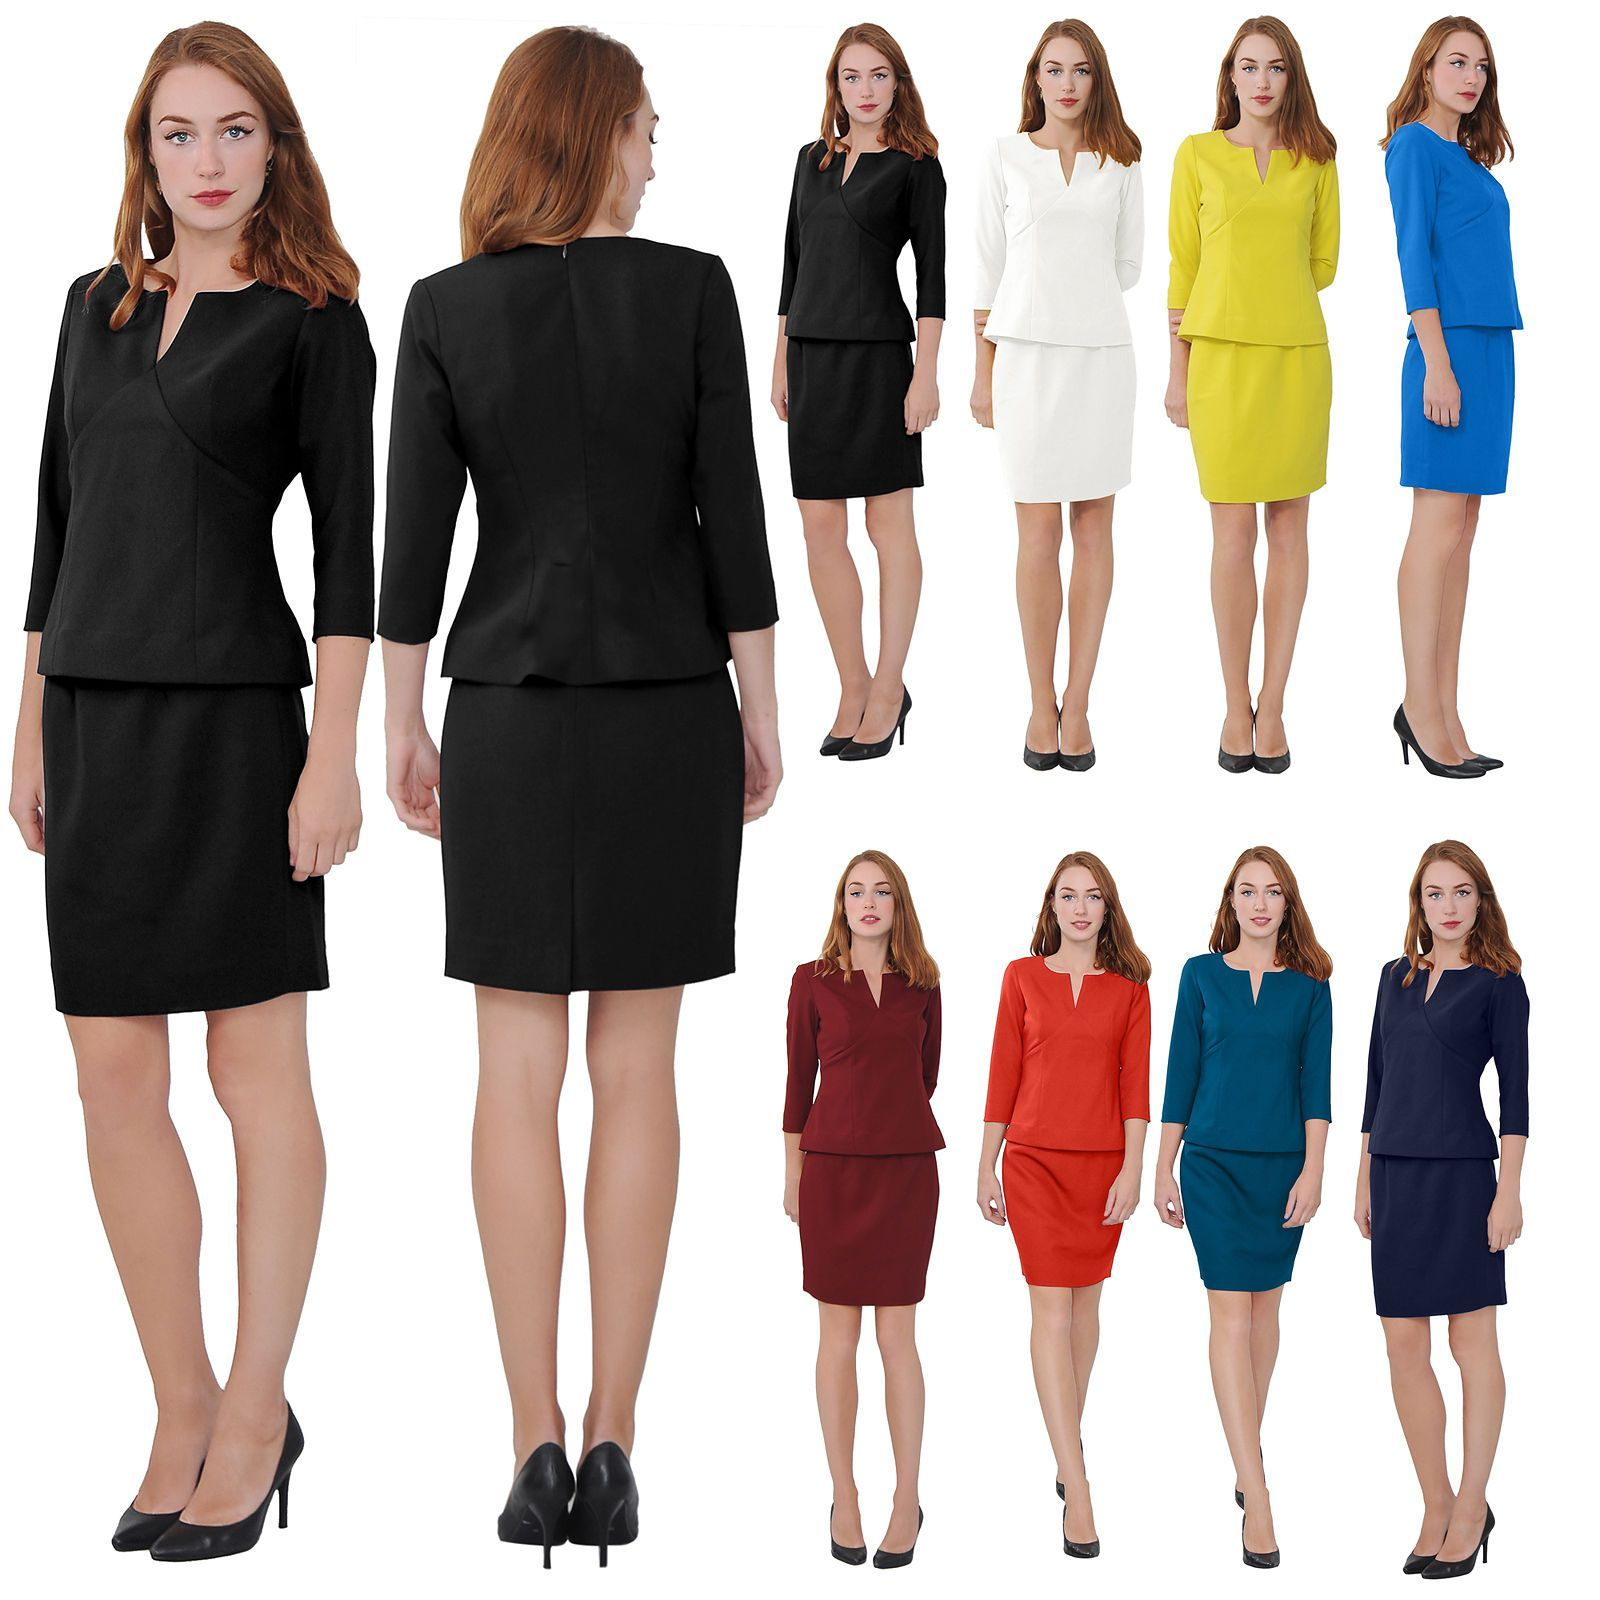 f342f0637 Marycrafts Women'S Elegant Skirt Suit Set Work Office Business Wear Skirt  Suits